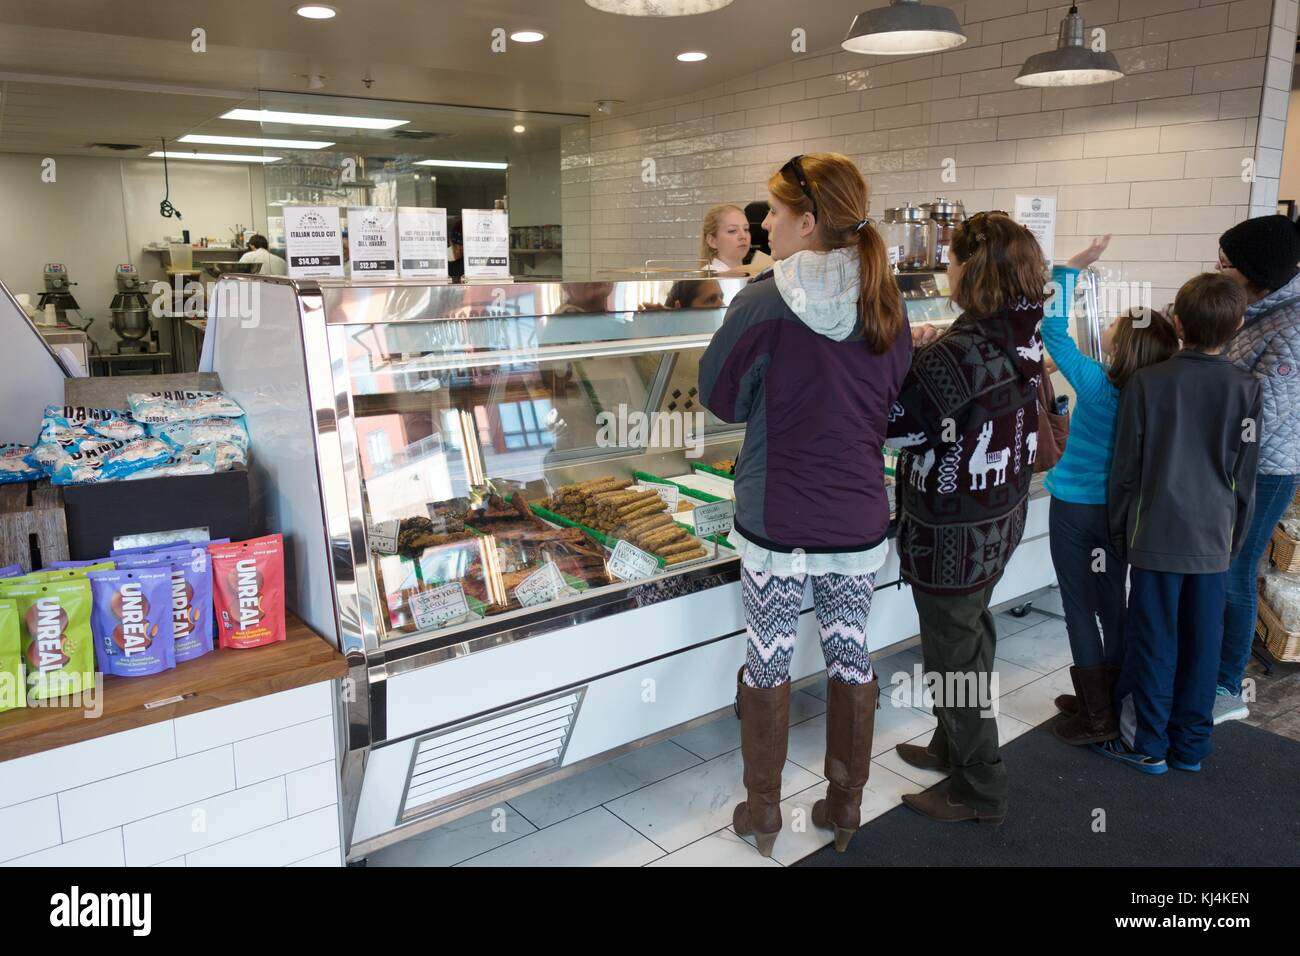 People shopping for vegan meats at The Herbivorous Butcher shop in Minneapolis, Minnesota, USA. - Stock Image